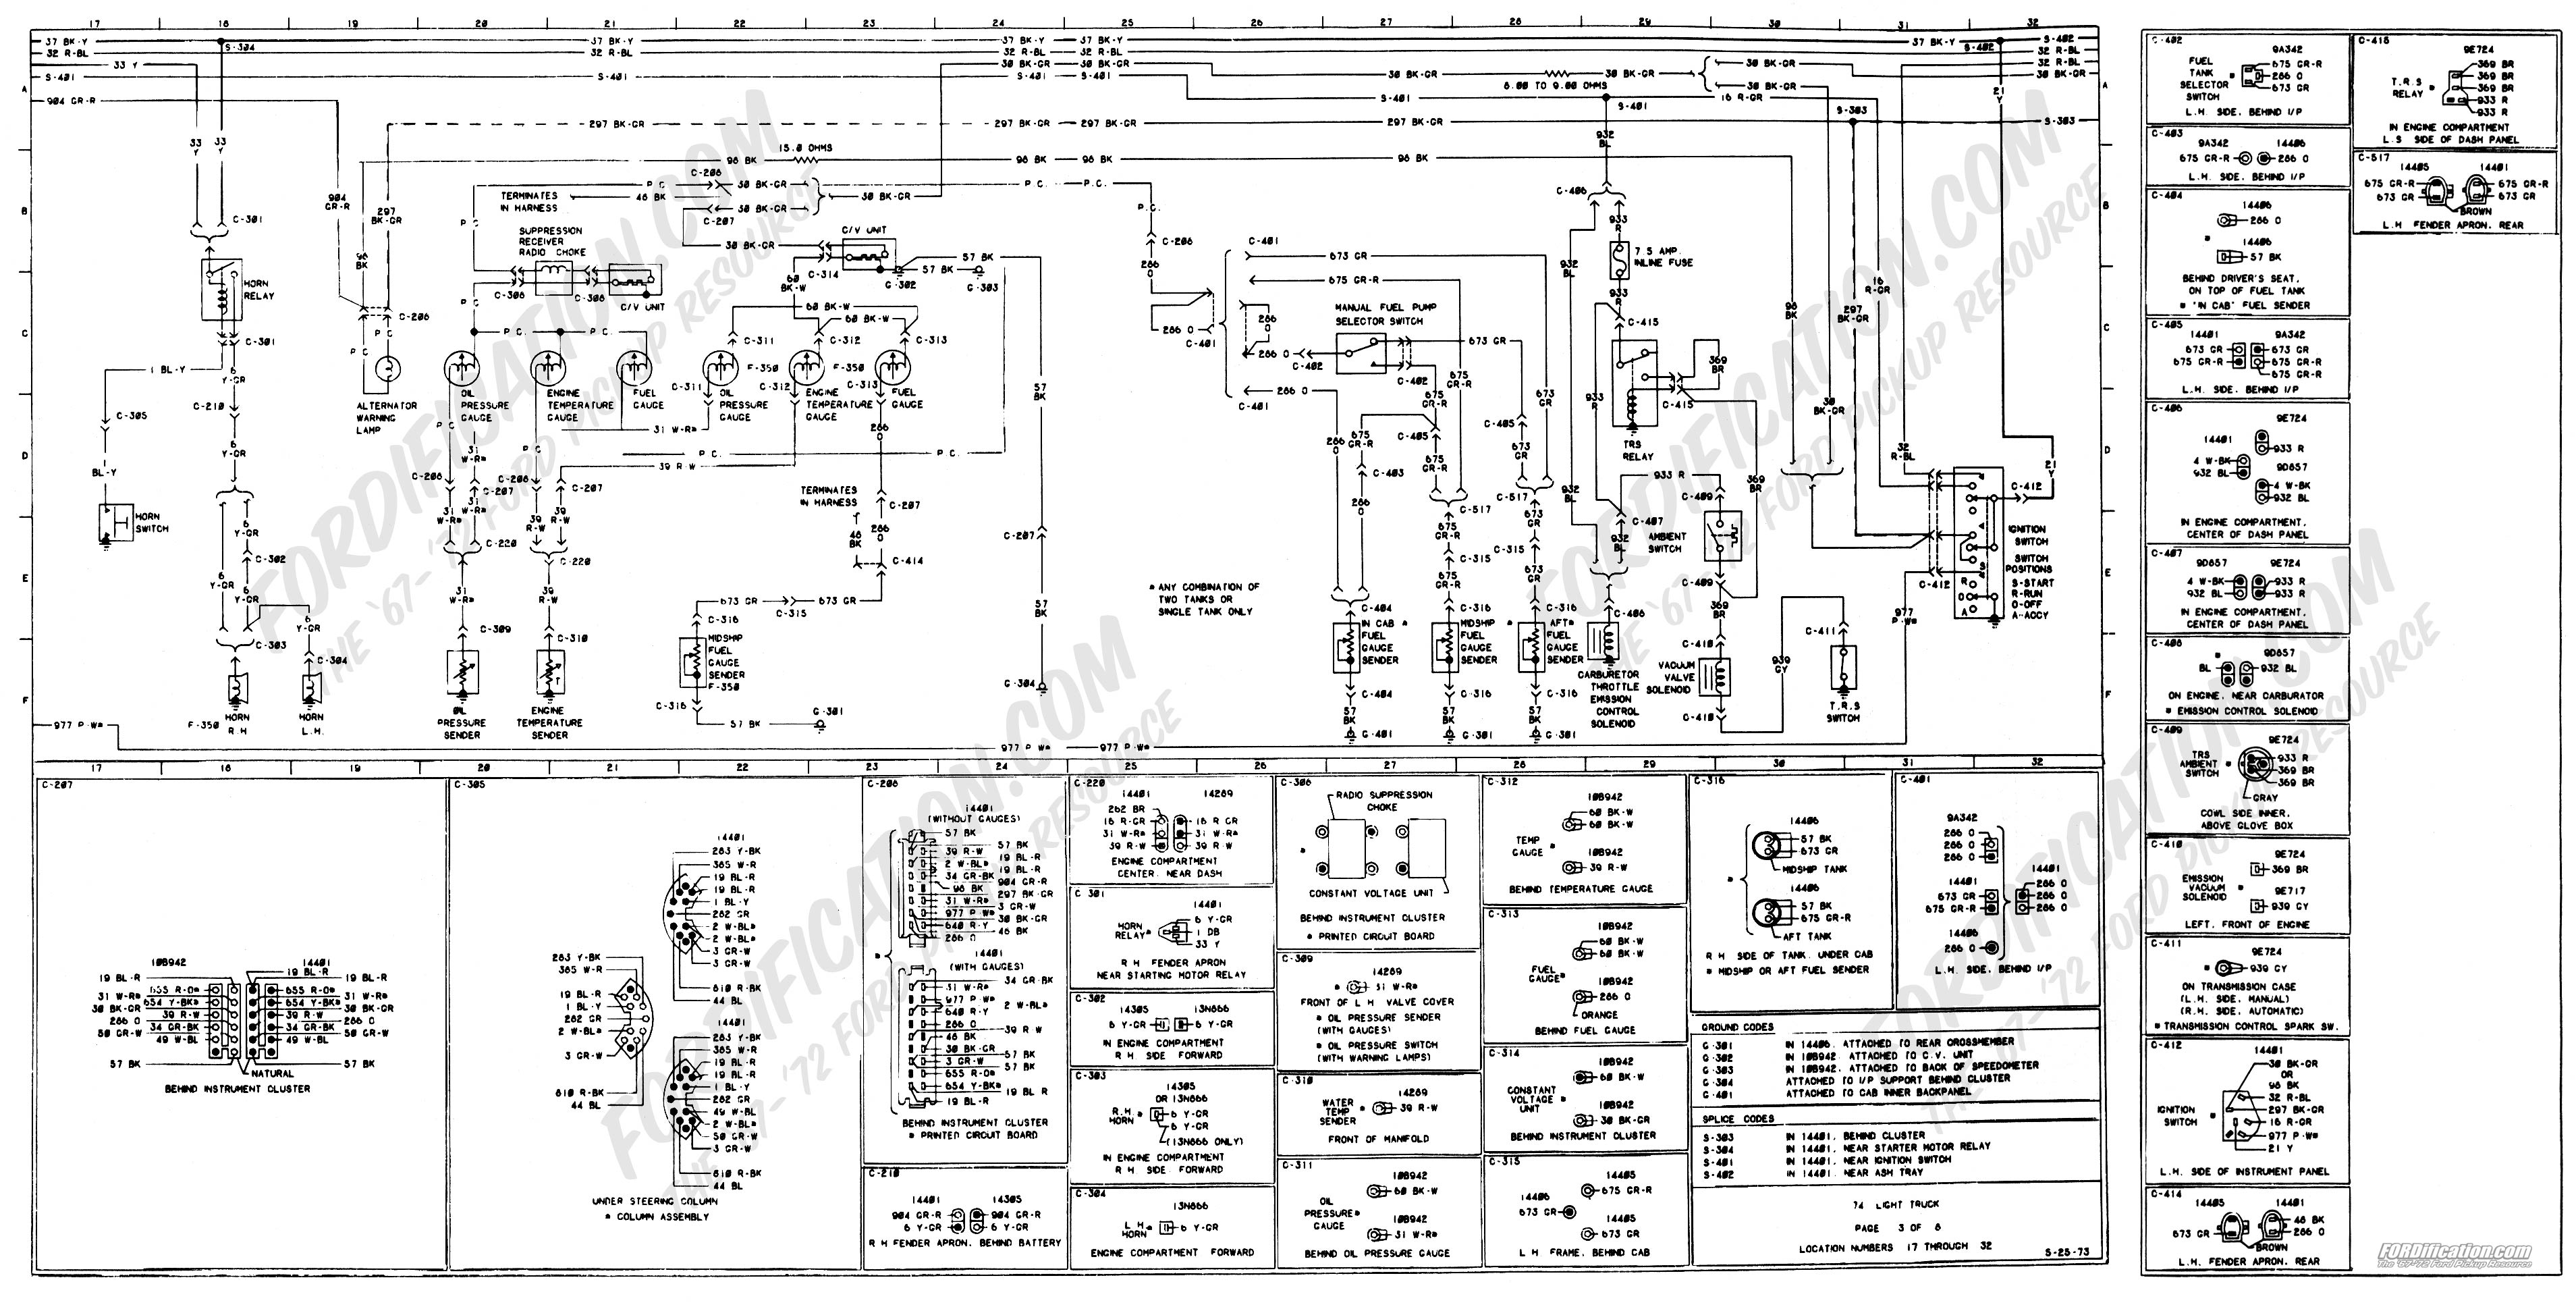 79 Mustang Fuse Panel Diagram Reinvent Your Wiring 1988 F350 Box 1973 Ford F 250 Detailed Schematics Rh Keyplusrubber Com